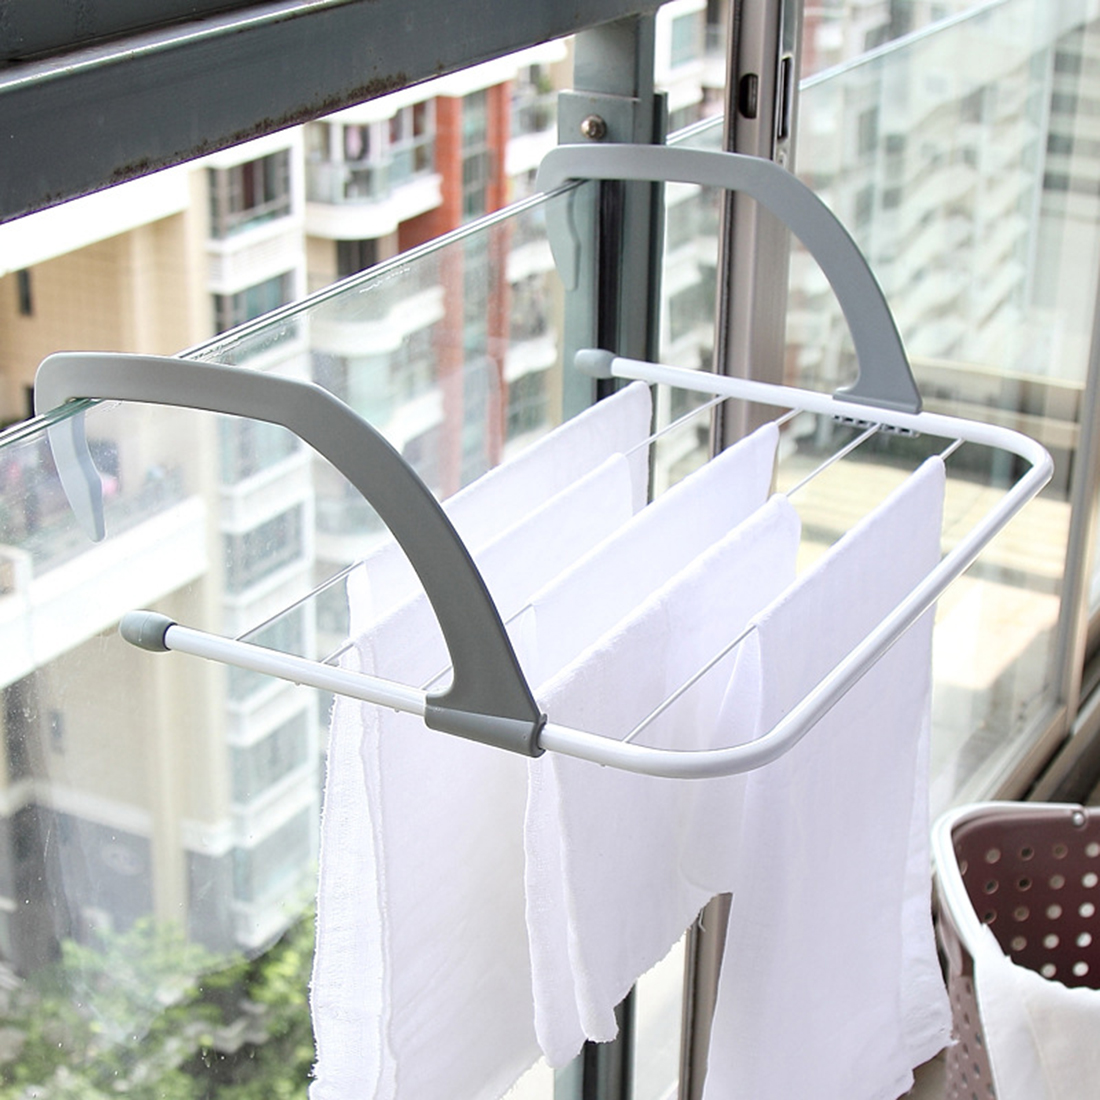 Collapsible towel clothes hanger multi-purpose clothes rack .